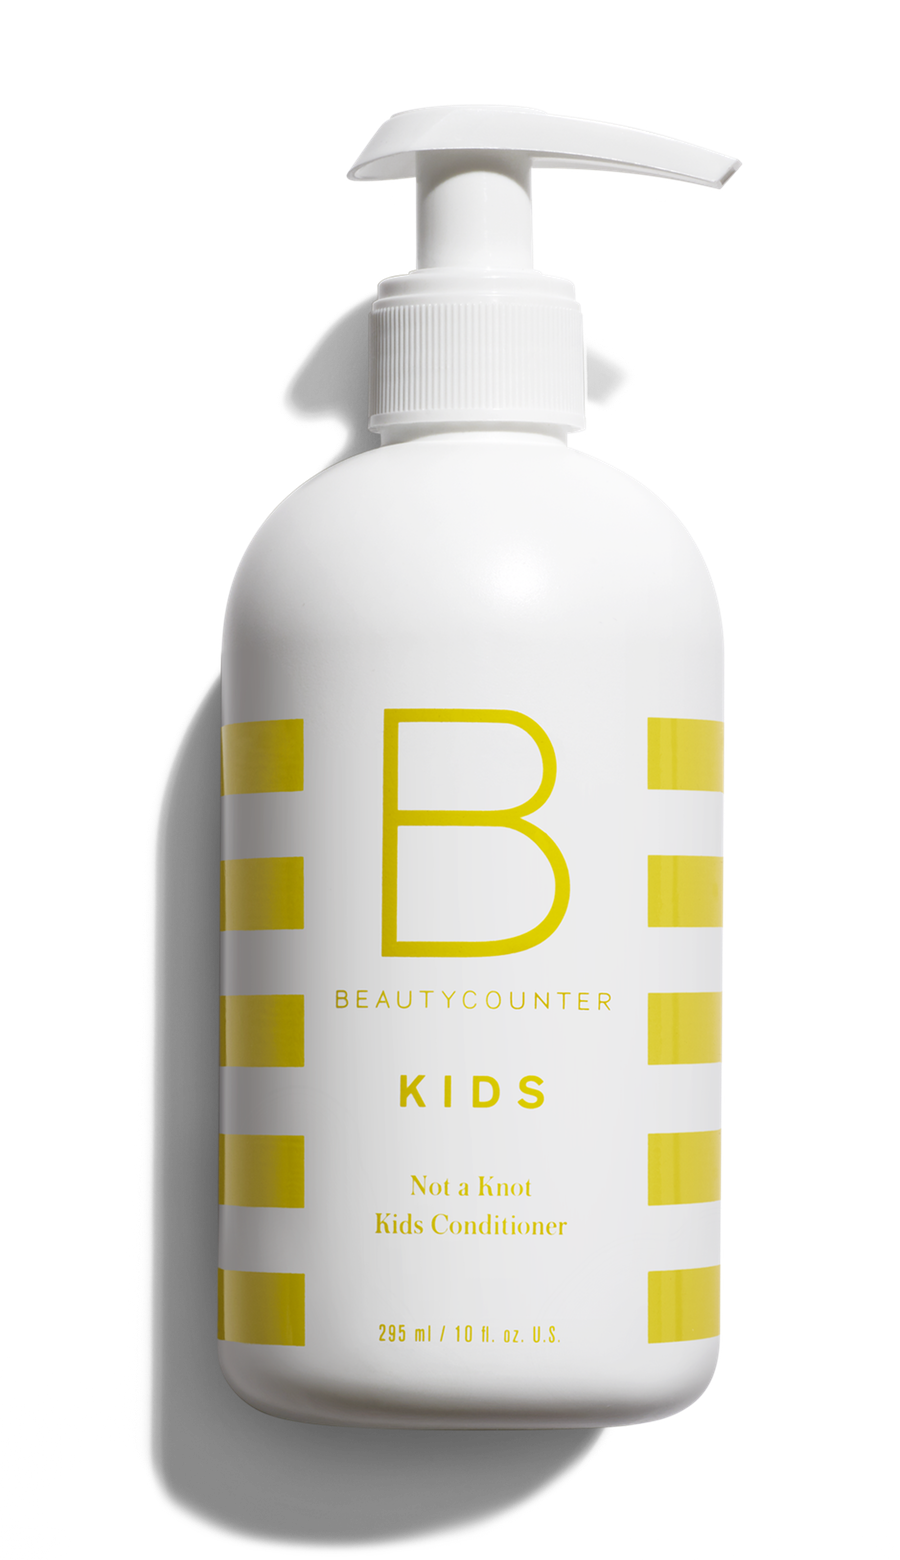 product-images-4012-imgs-new-not-a-knot-kids-conditioner.png